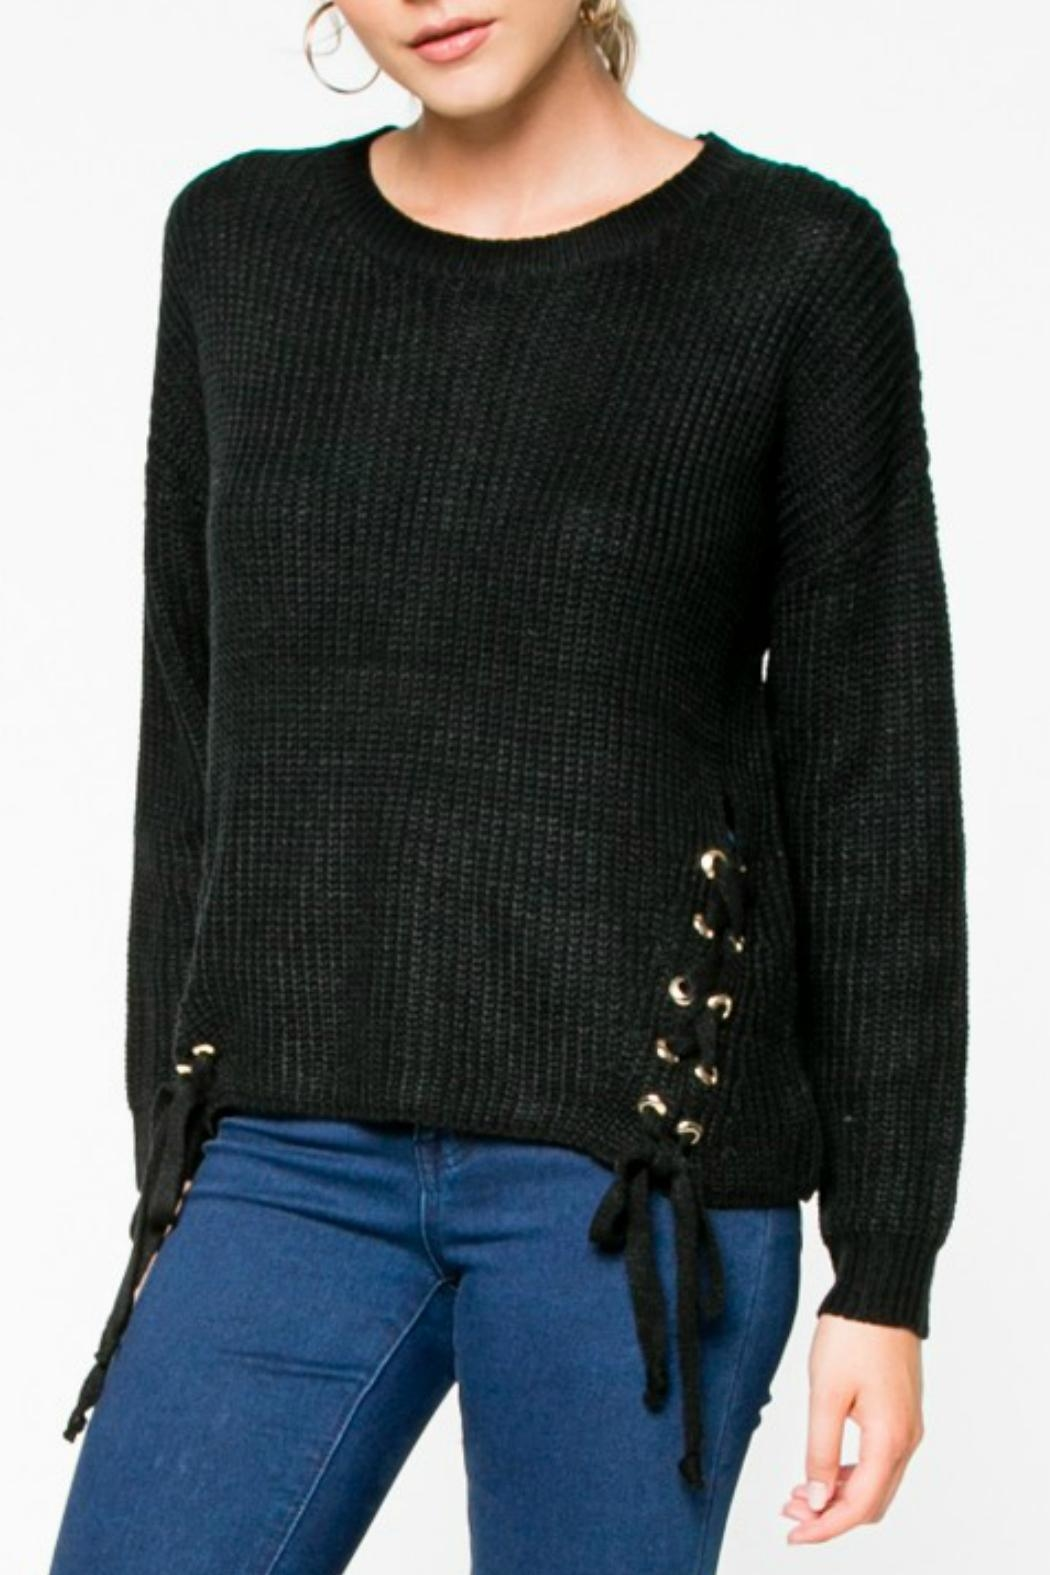 Everly Lace-Up Knit Sweater - Main Image